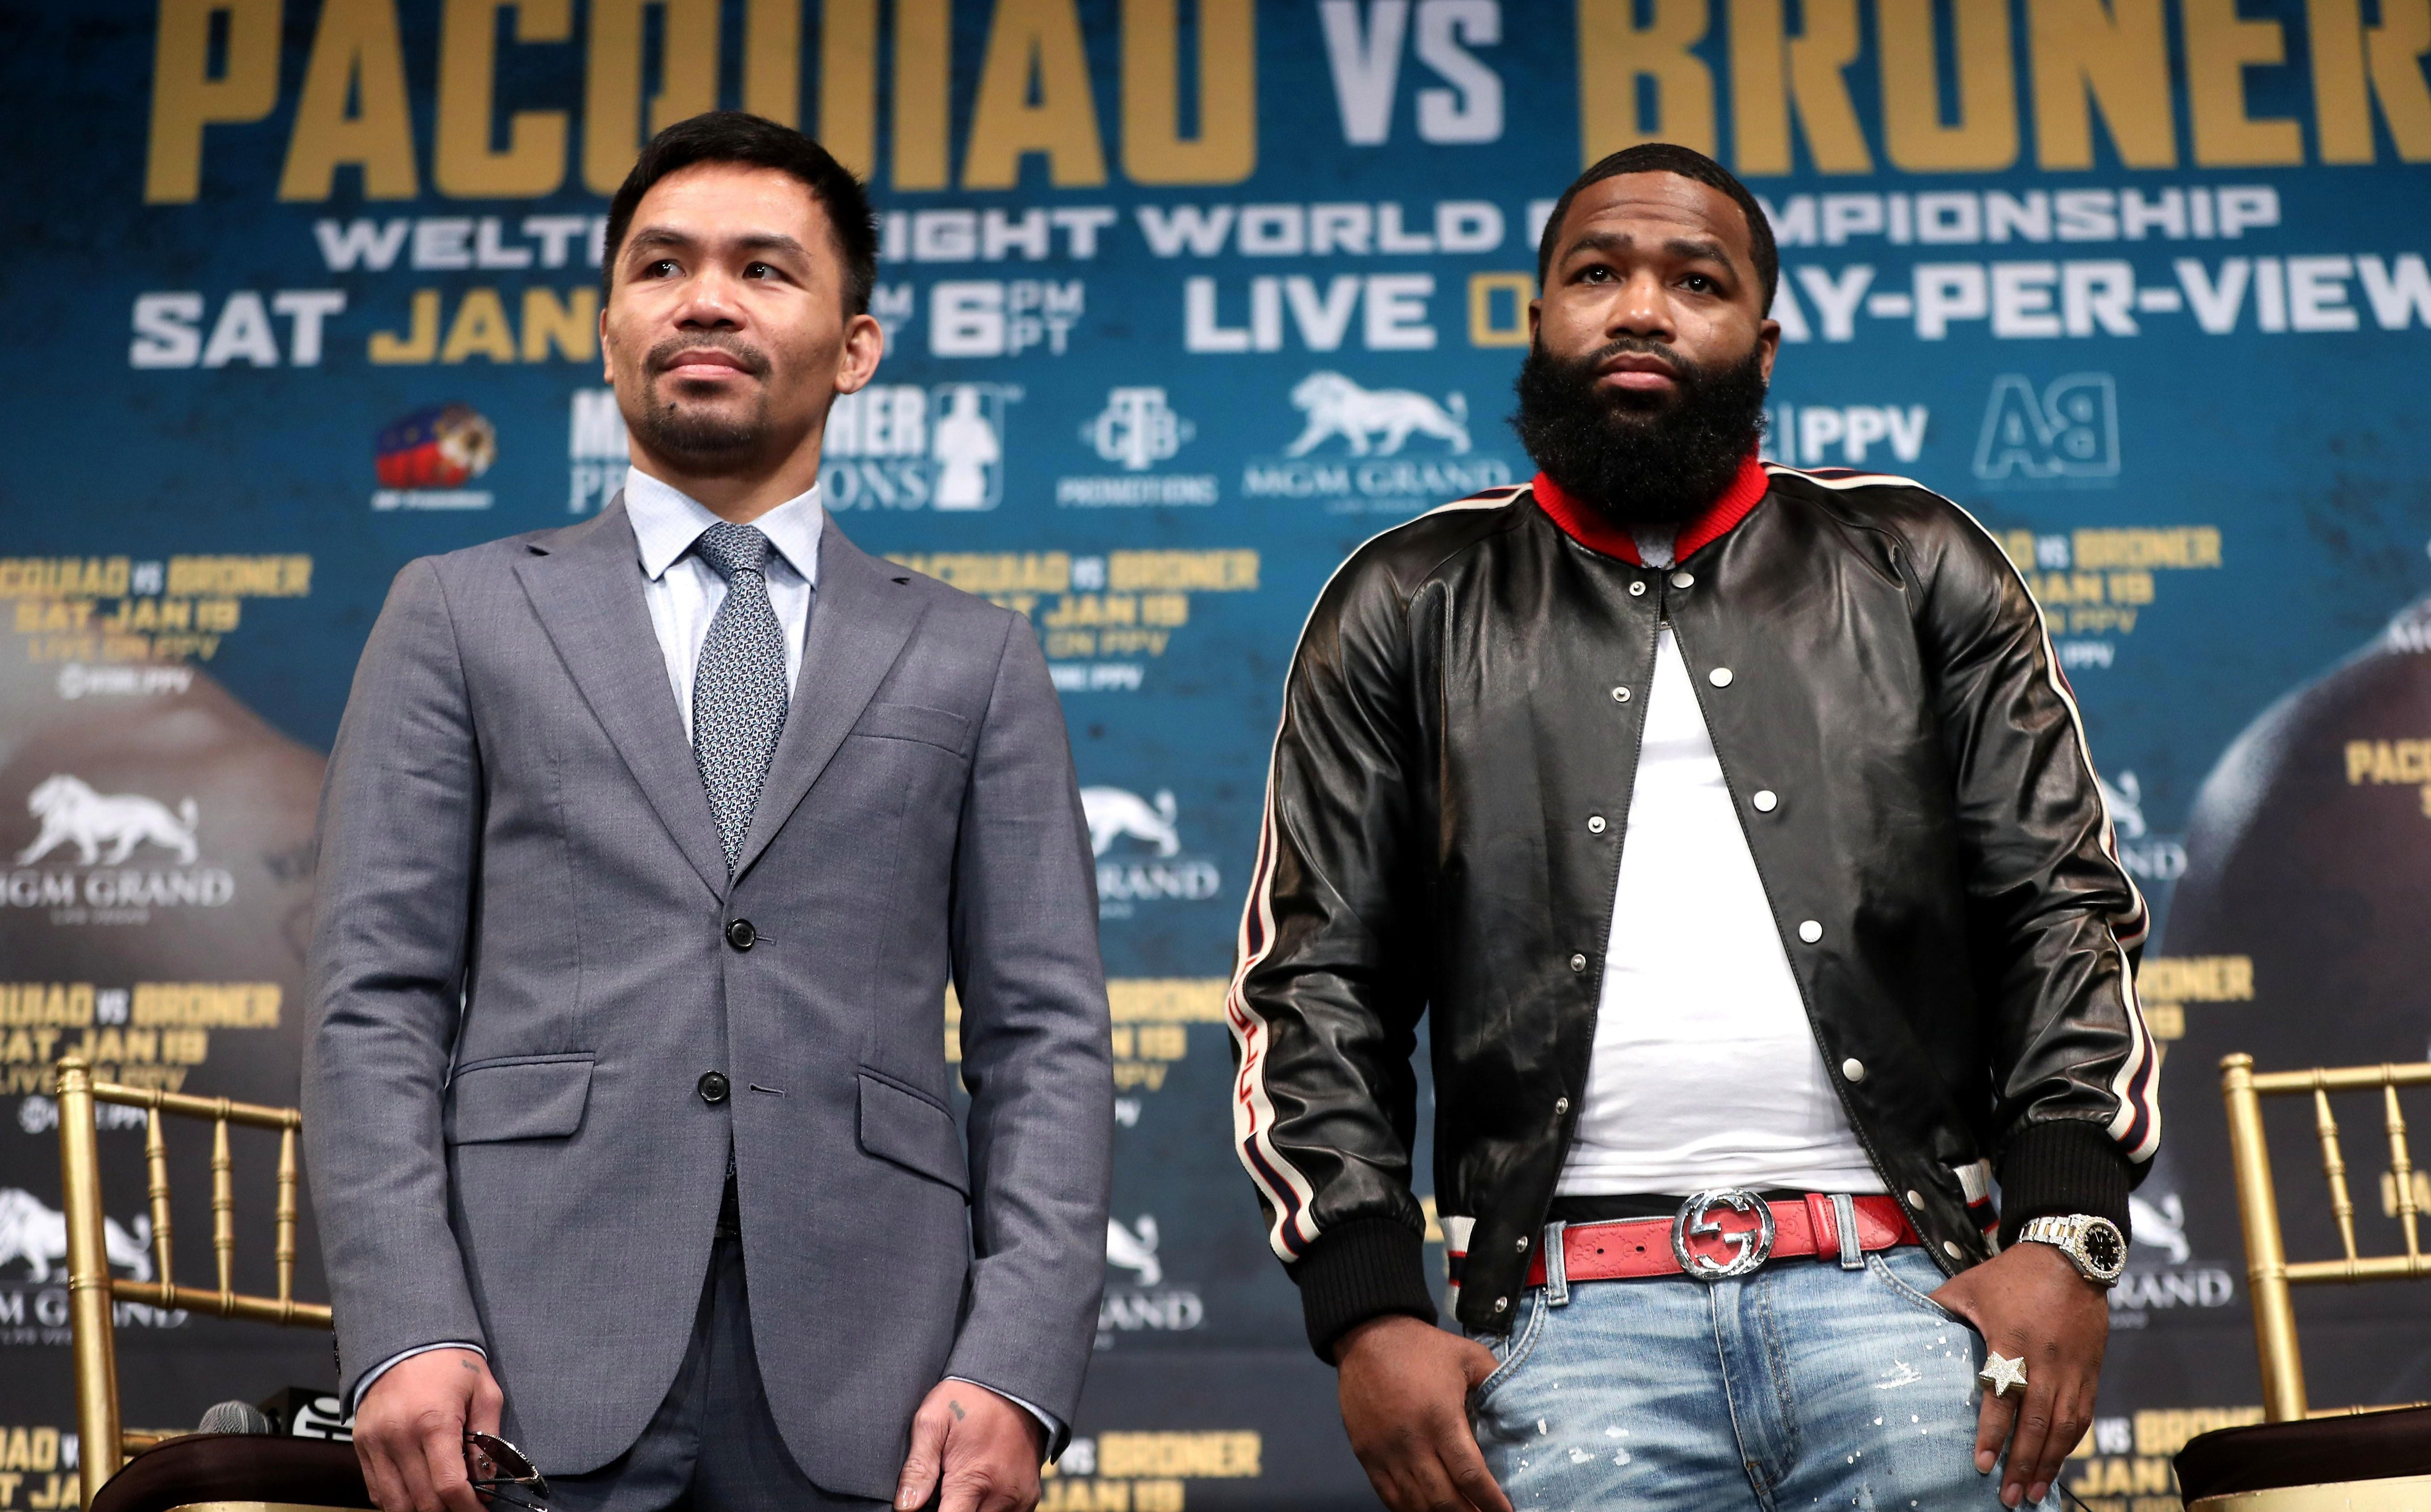 Adrien Broner will take on the Filipino superstar on January 19